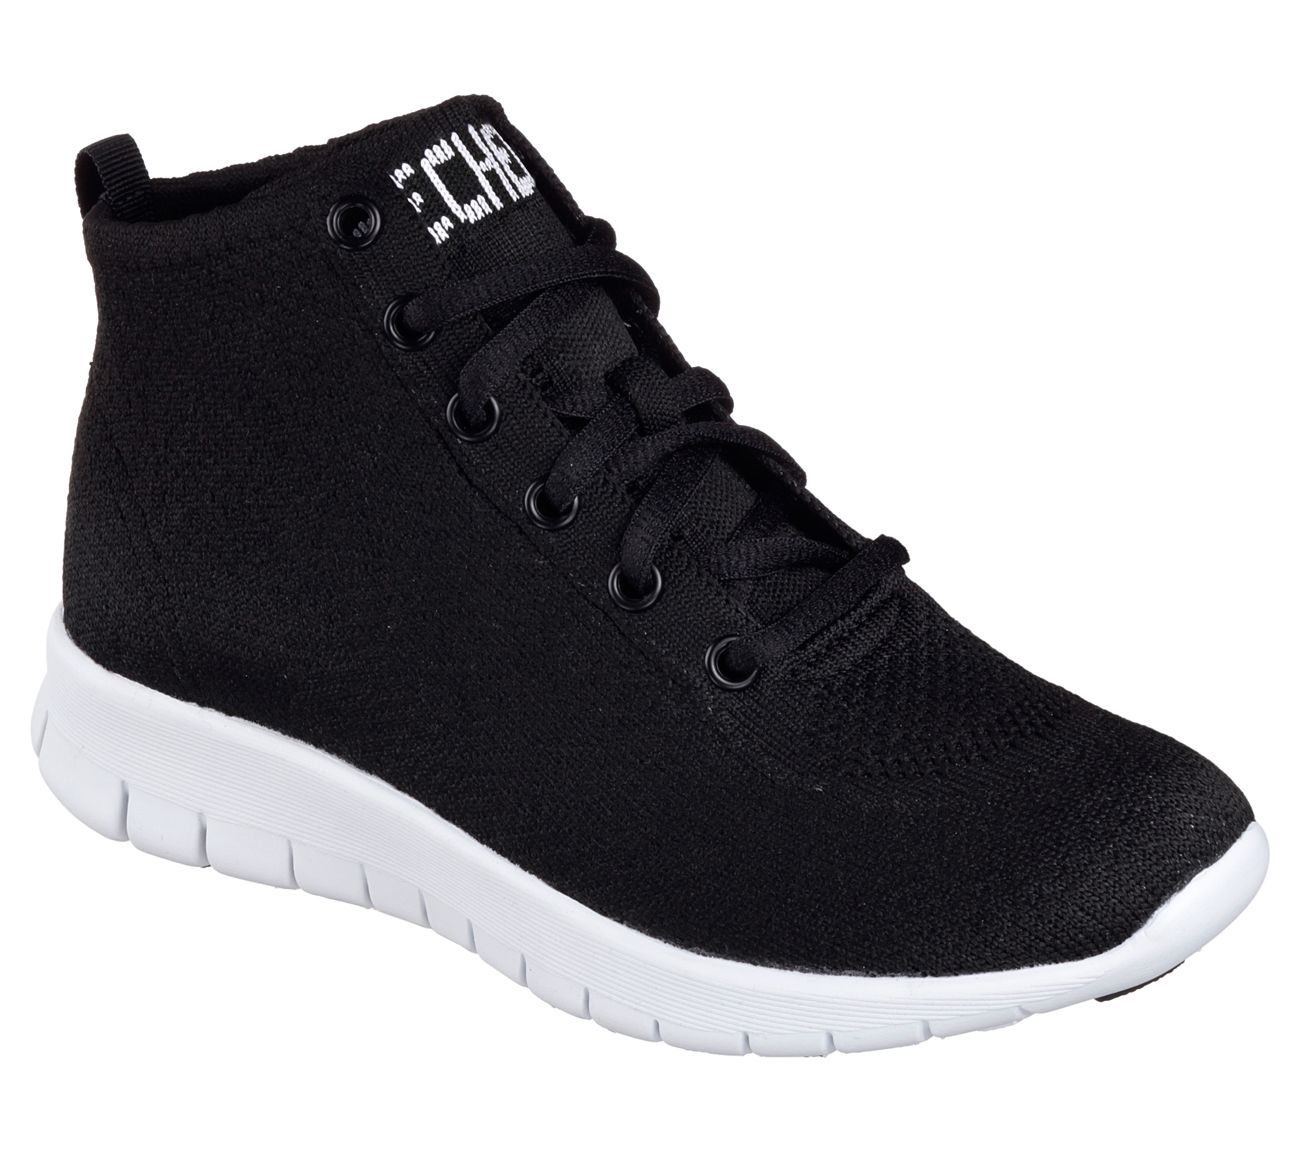 Make a great thought even better with the SKECHERS Bright Idea - Elevated  shoe. Soft